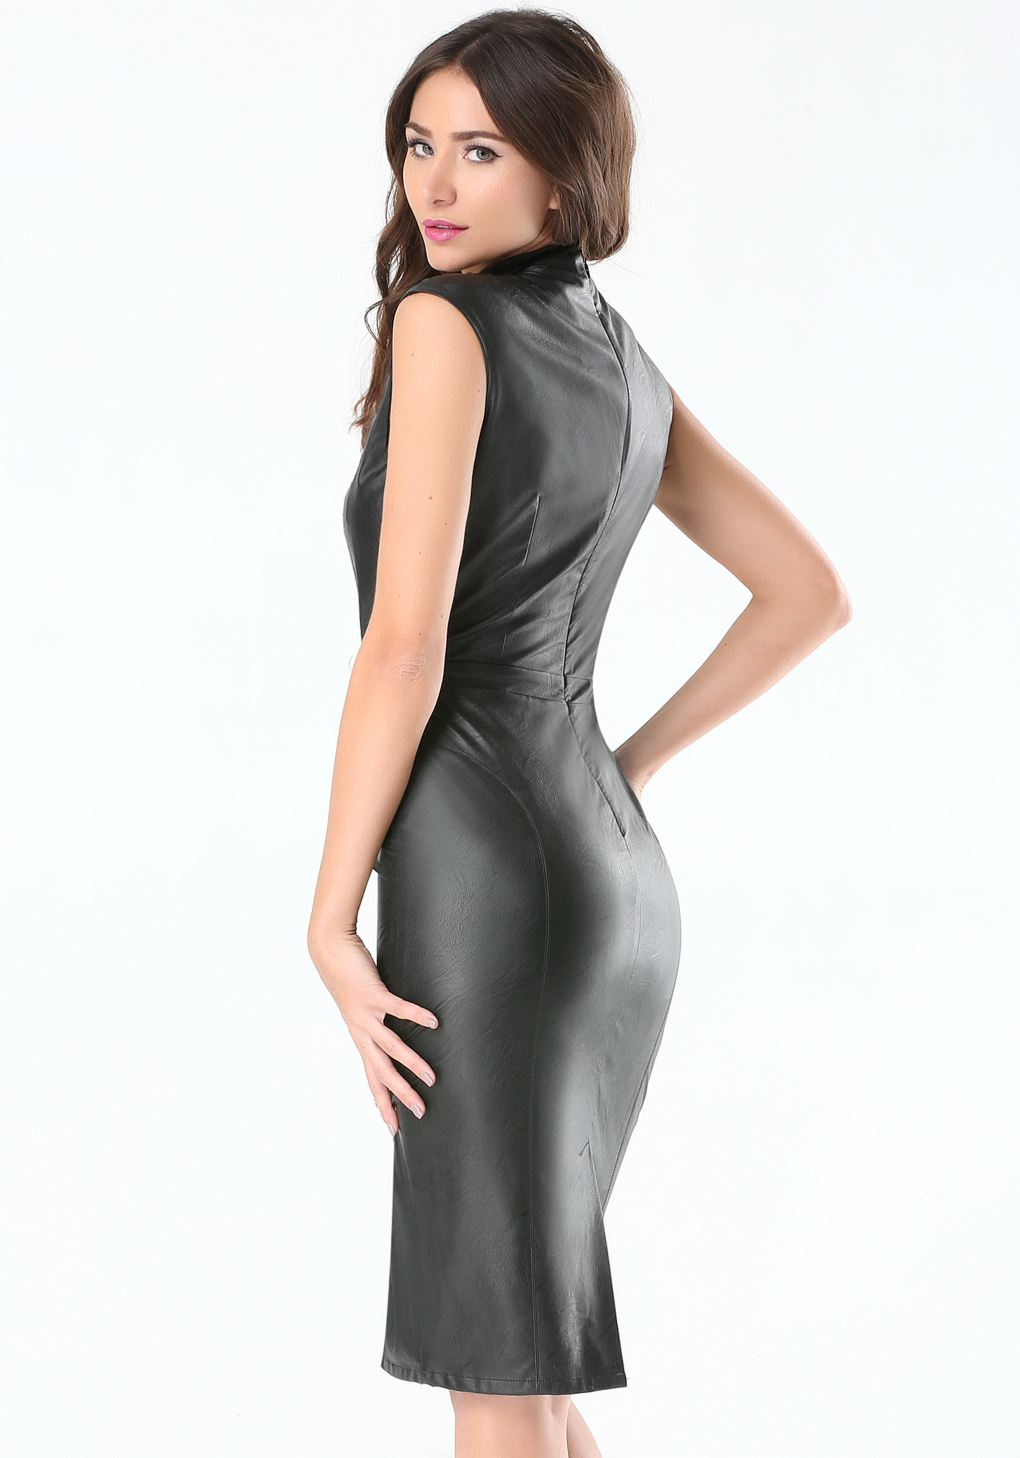 Bebe Petite Faux Leather Dress in Black | Lyst